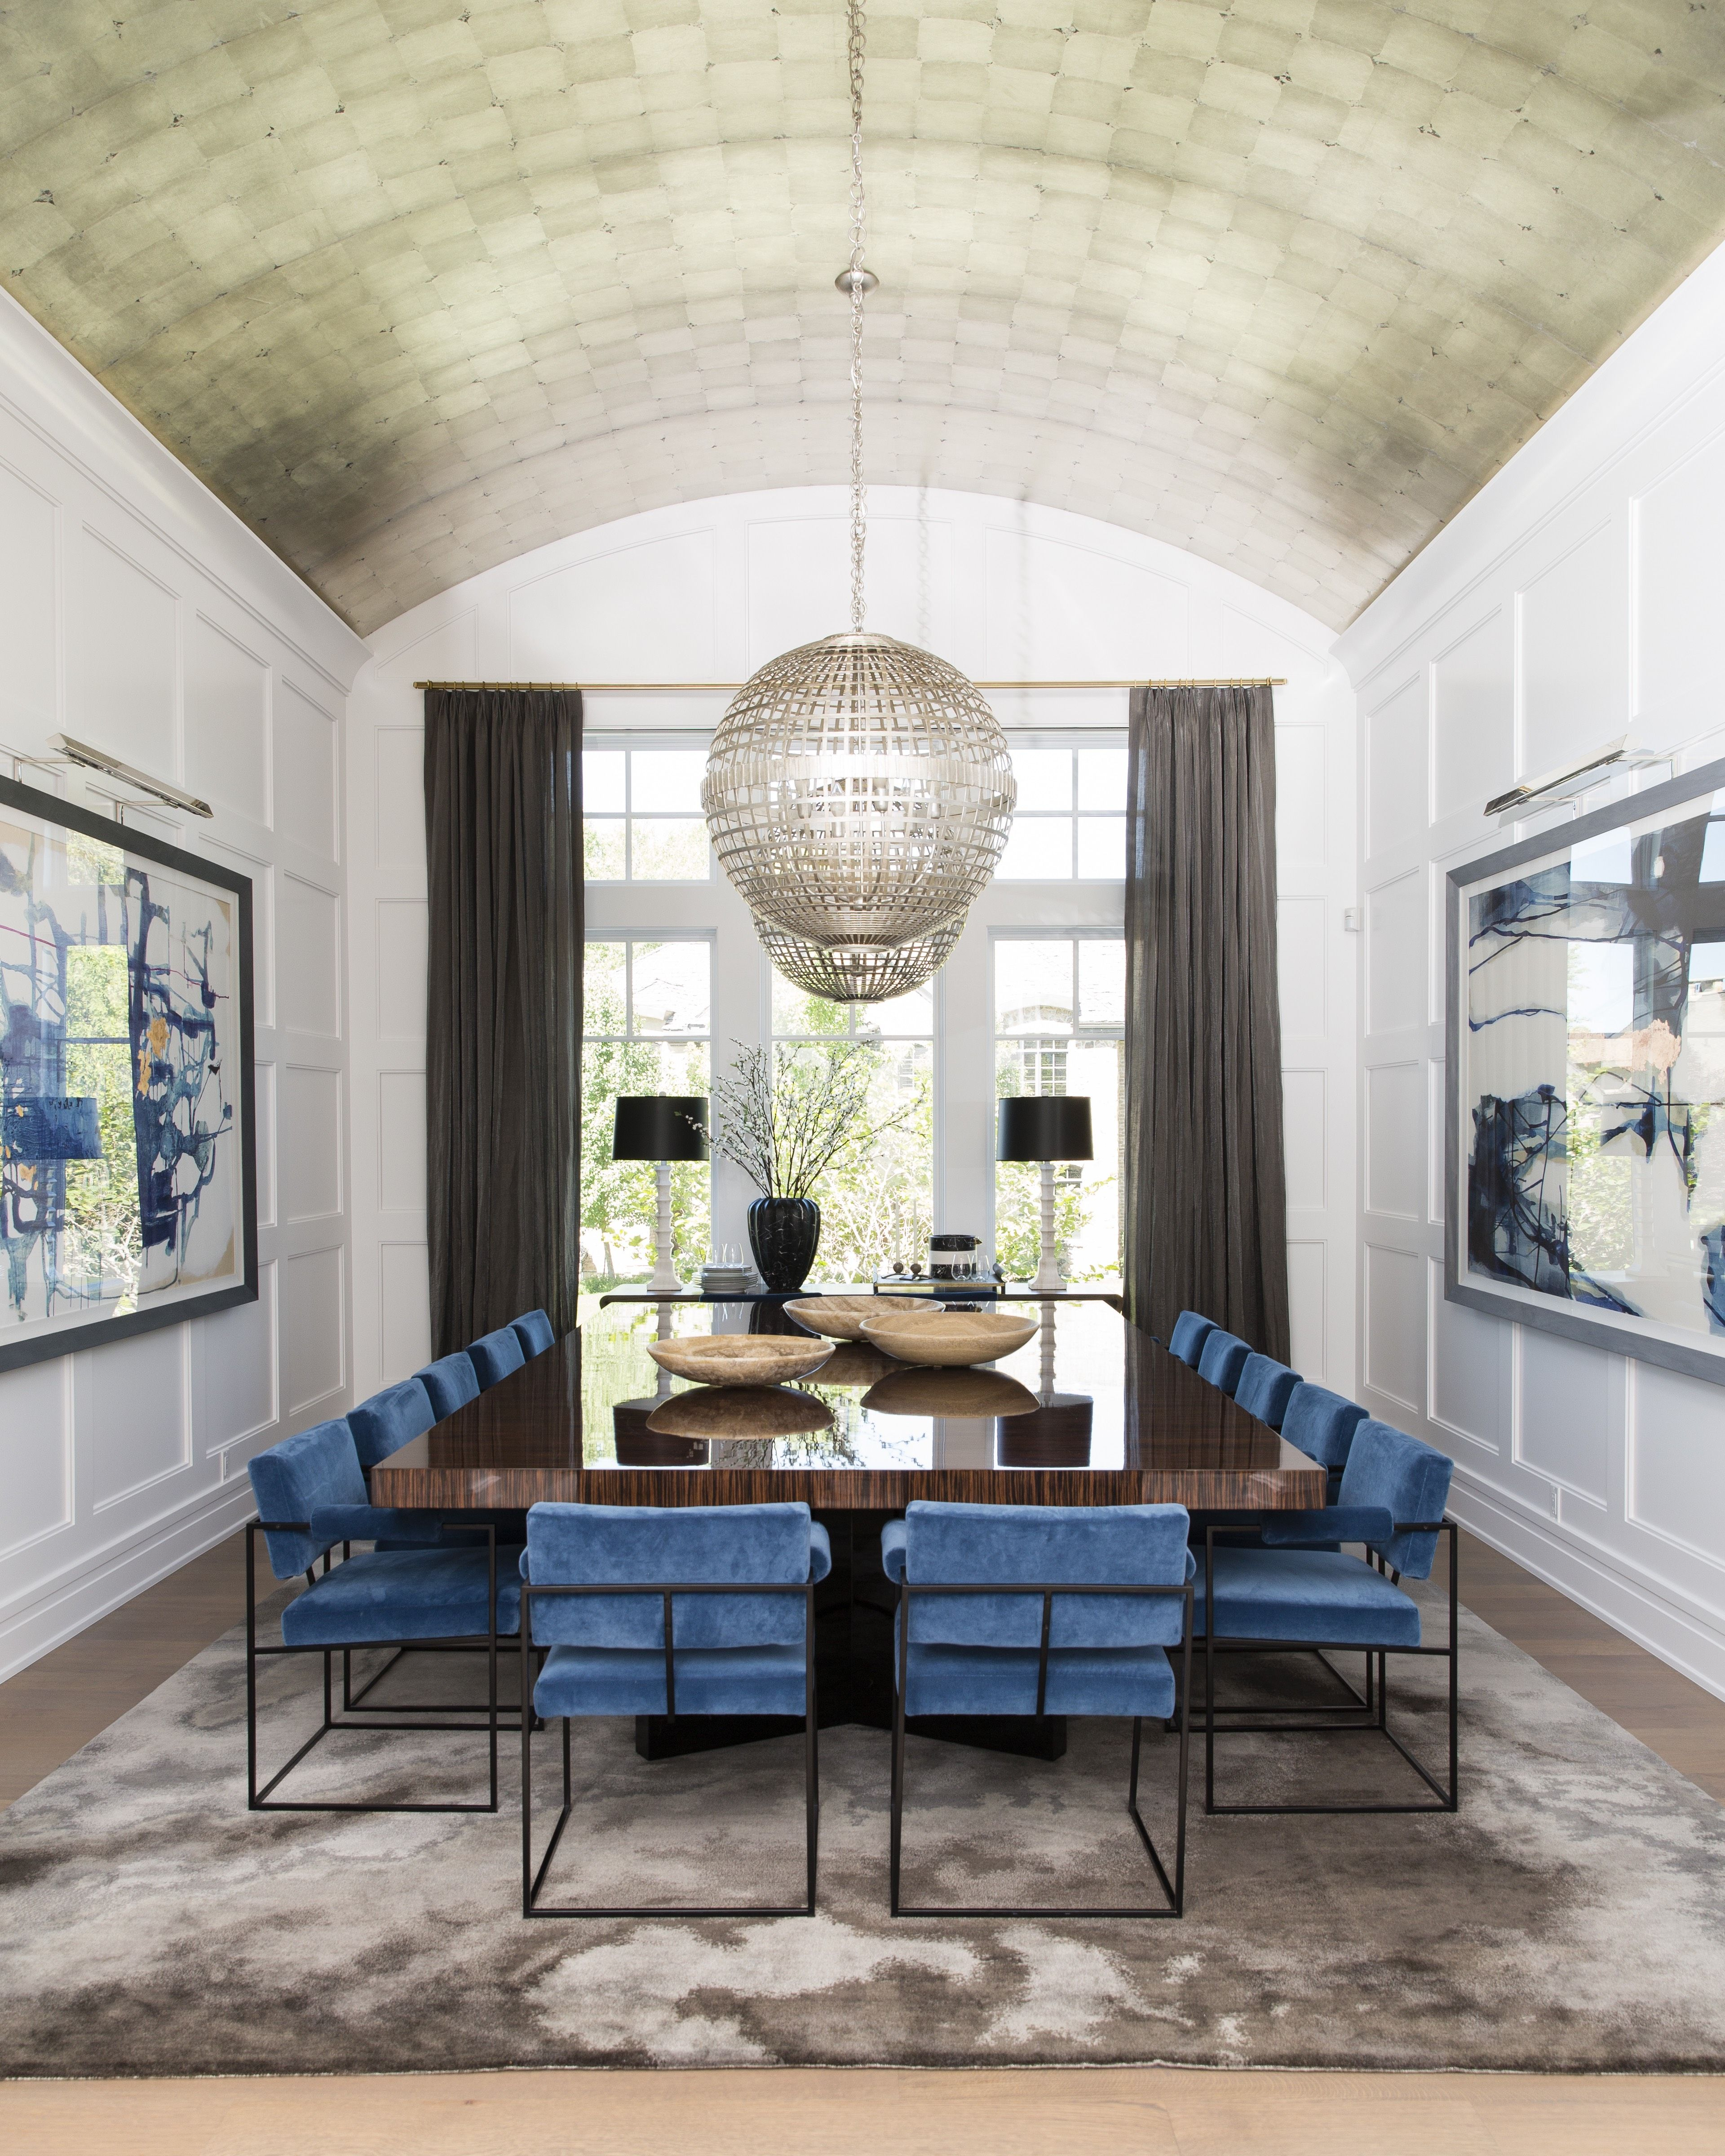 House Tour: An Orem, Utah Family Gets The Dream House They Always Wanted